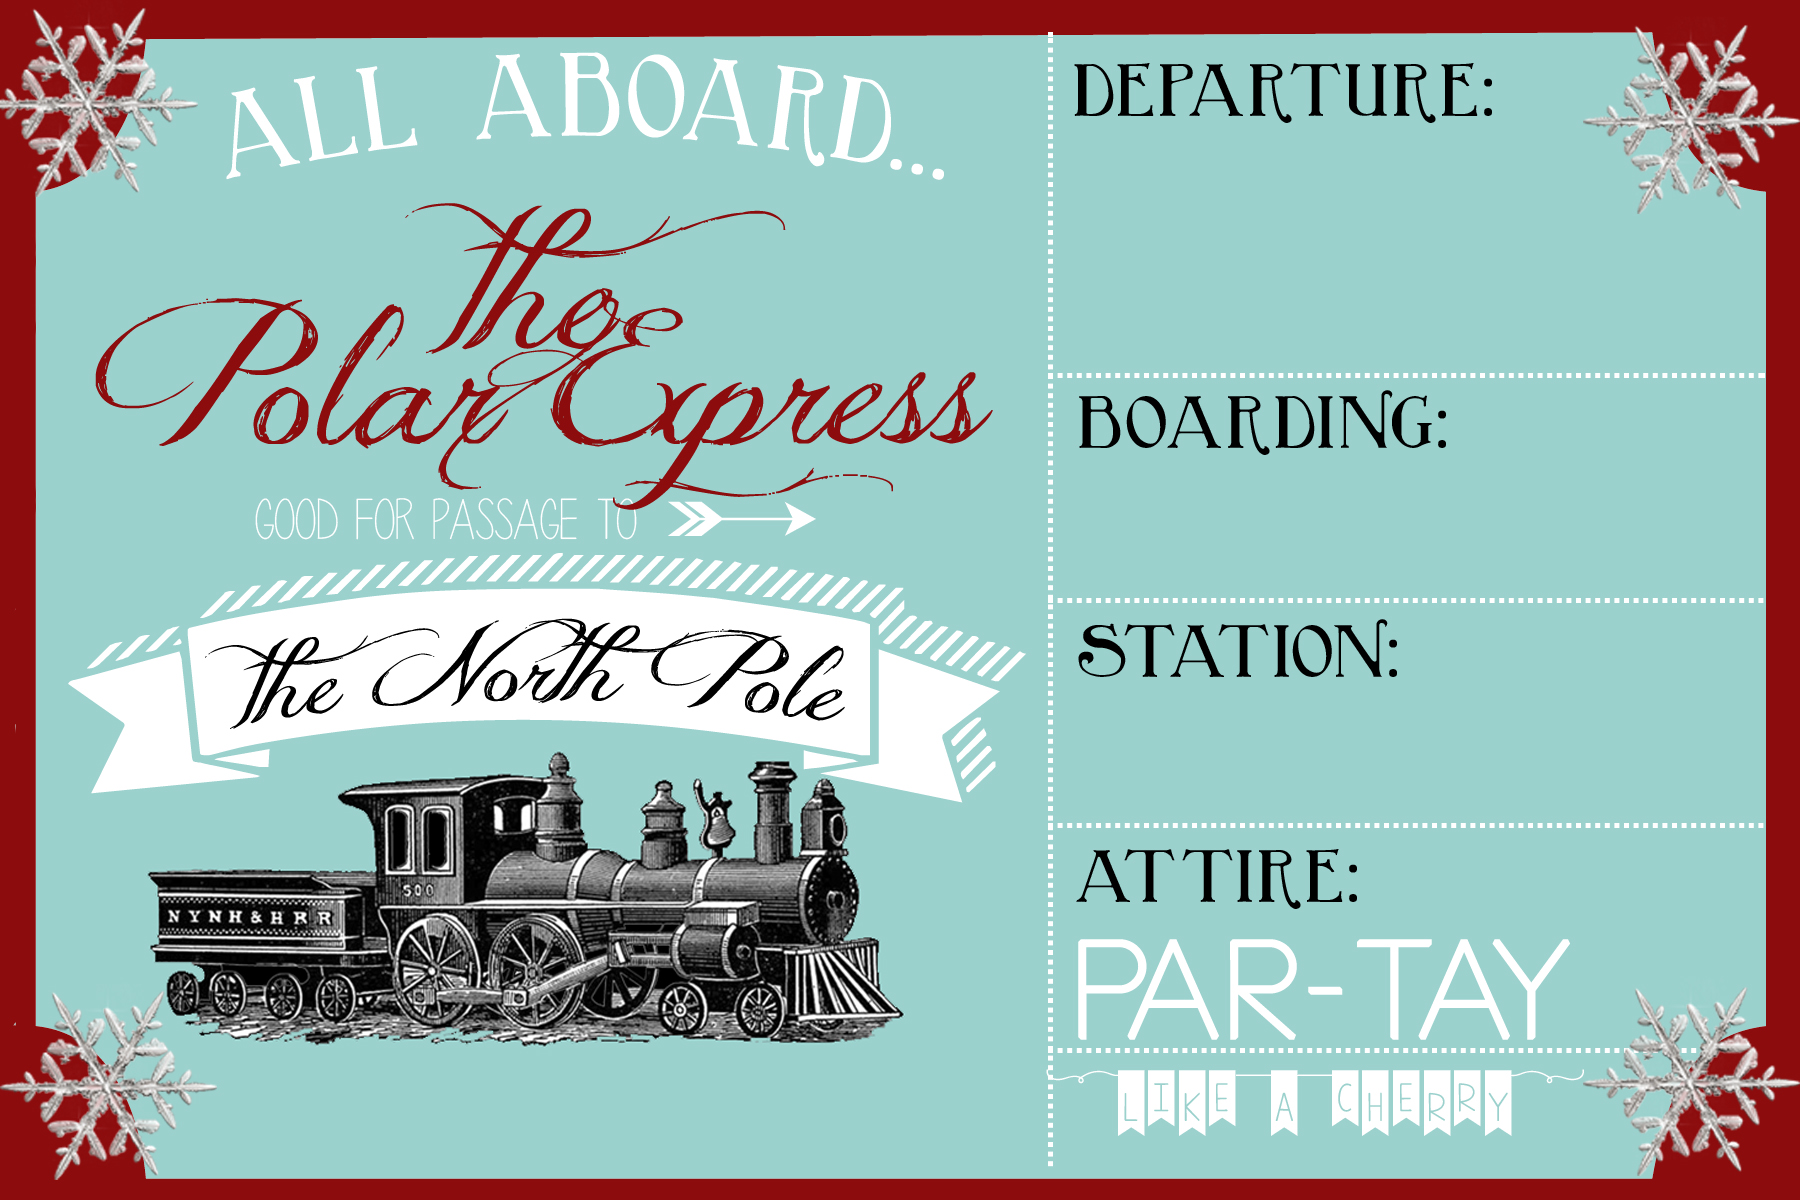 Polar Express Party Invitation Party Like a Cherry – Ticket Invitation Template